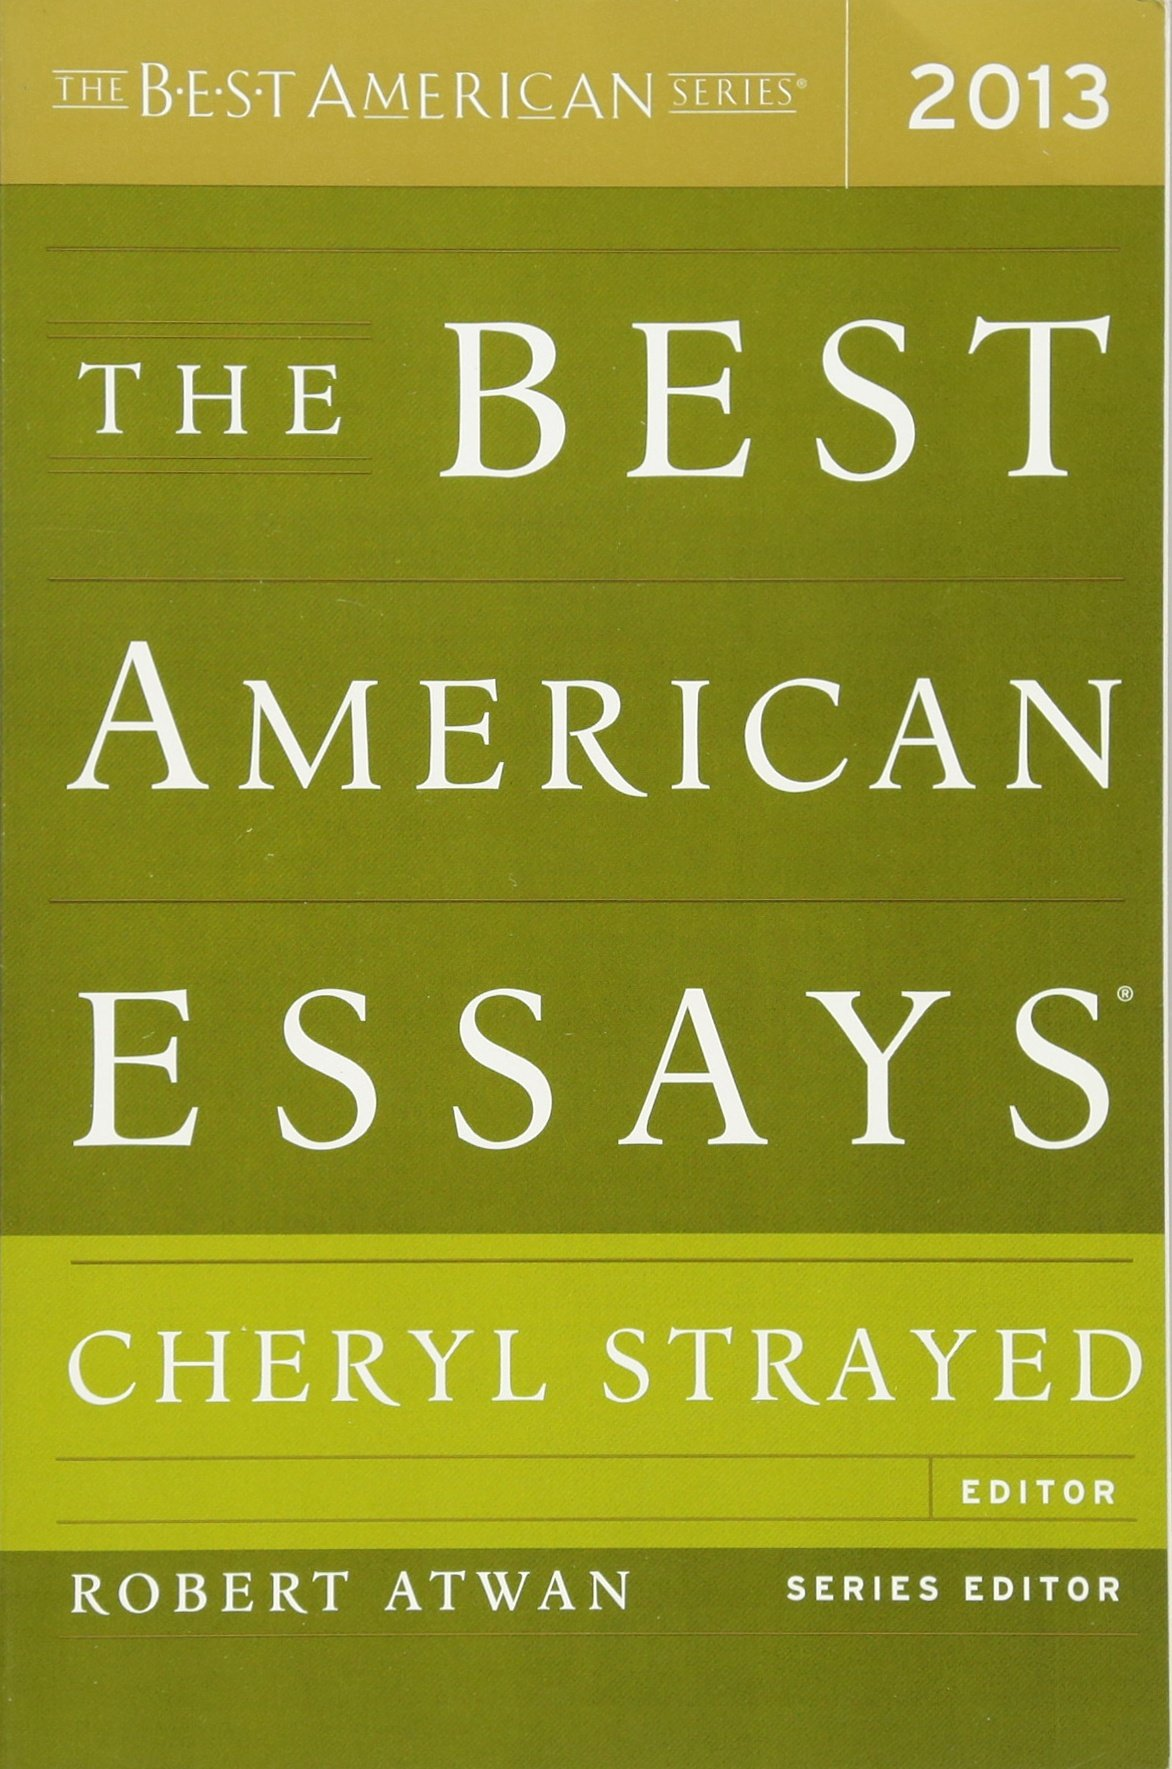 the best american essays the best american series ® robert  the best american essays 2013 the best american series ® robert atwan cheryl strayed 9780544103887 com books